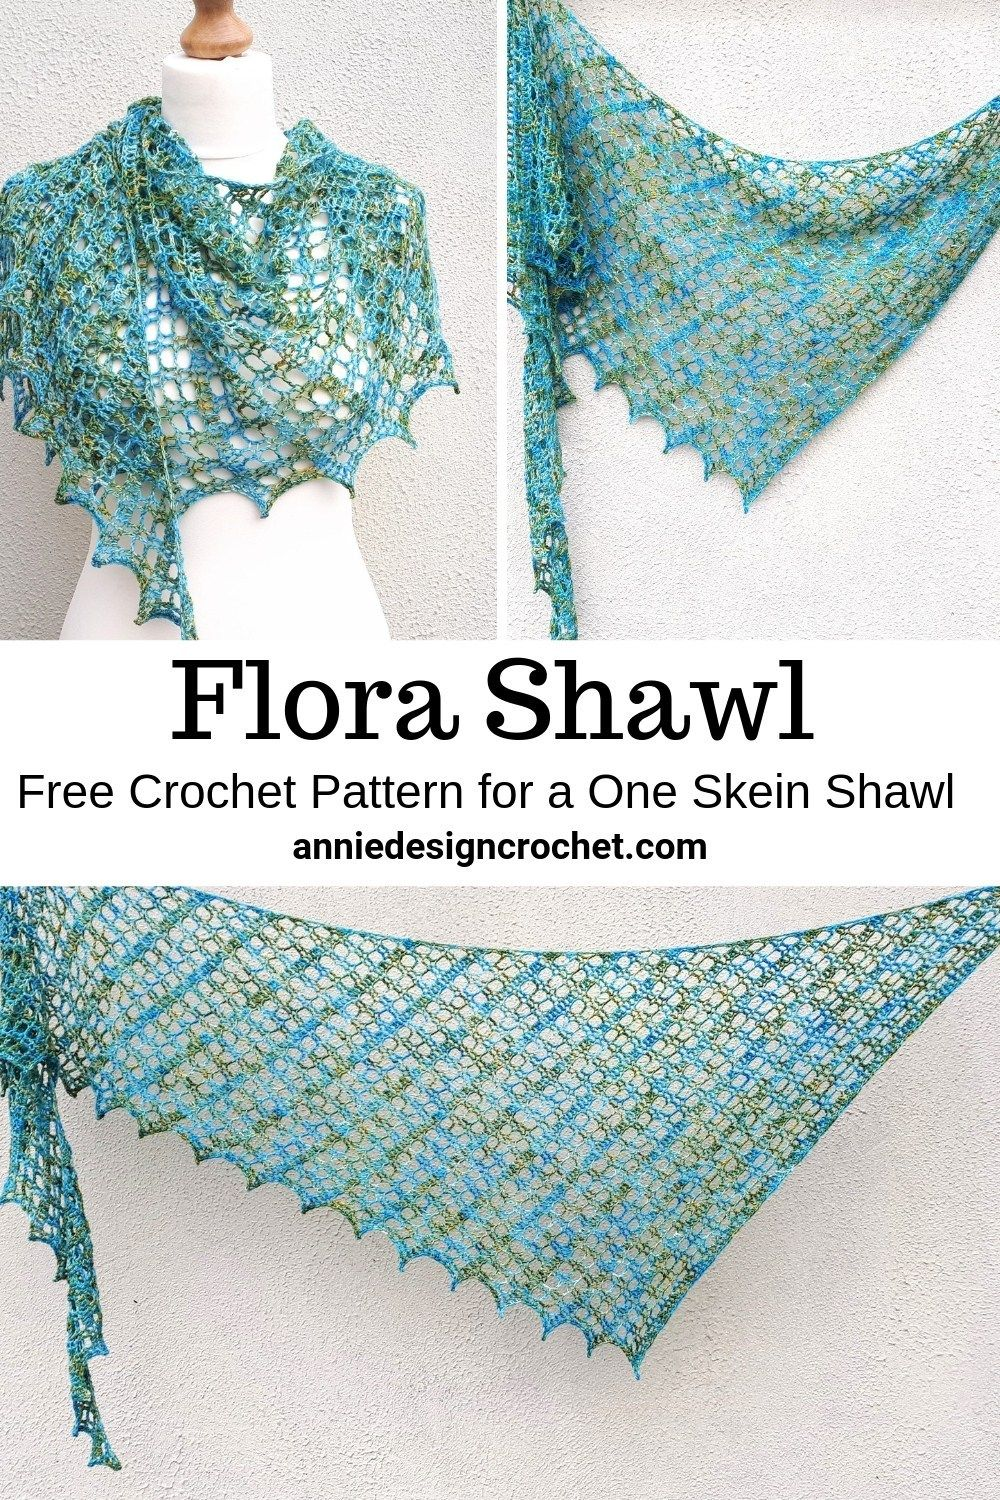 A one skein crochet shawl! A free crochet pattern perfect for that precious skein of Indie Dyed yarn you have been saving. Flora Shawl is a light lace design, for a narrow asymmetric shawl with a wide wing span. Includes a helpful photo tutorial for the first 12 rows to get you started.